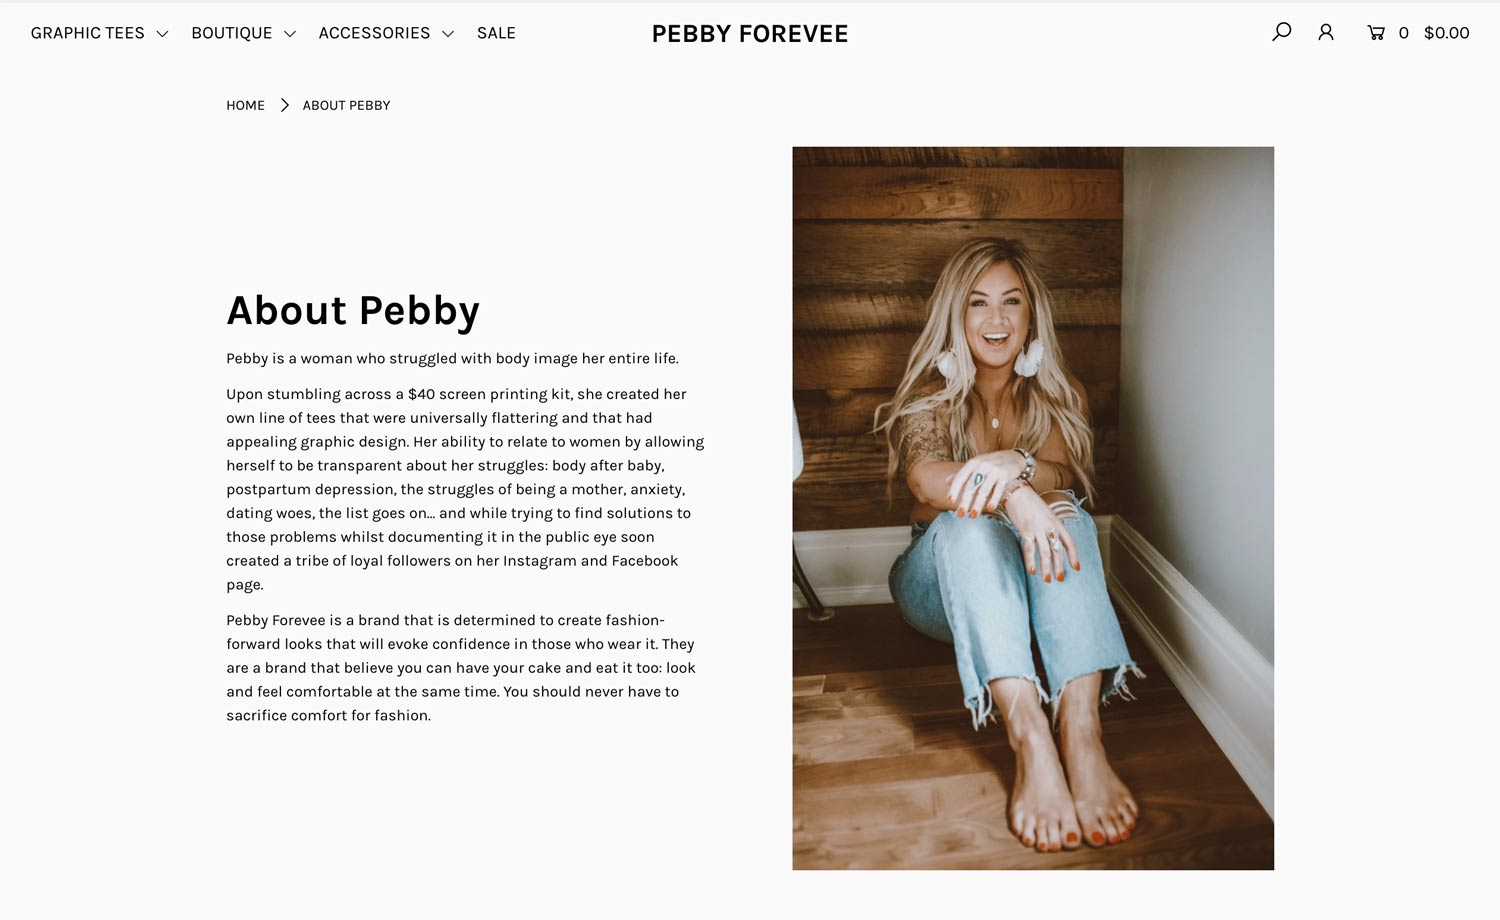 pebby shopify about page design